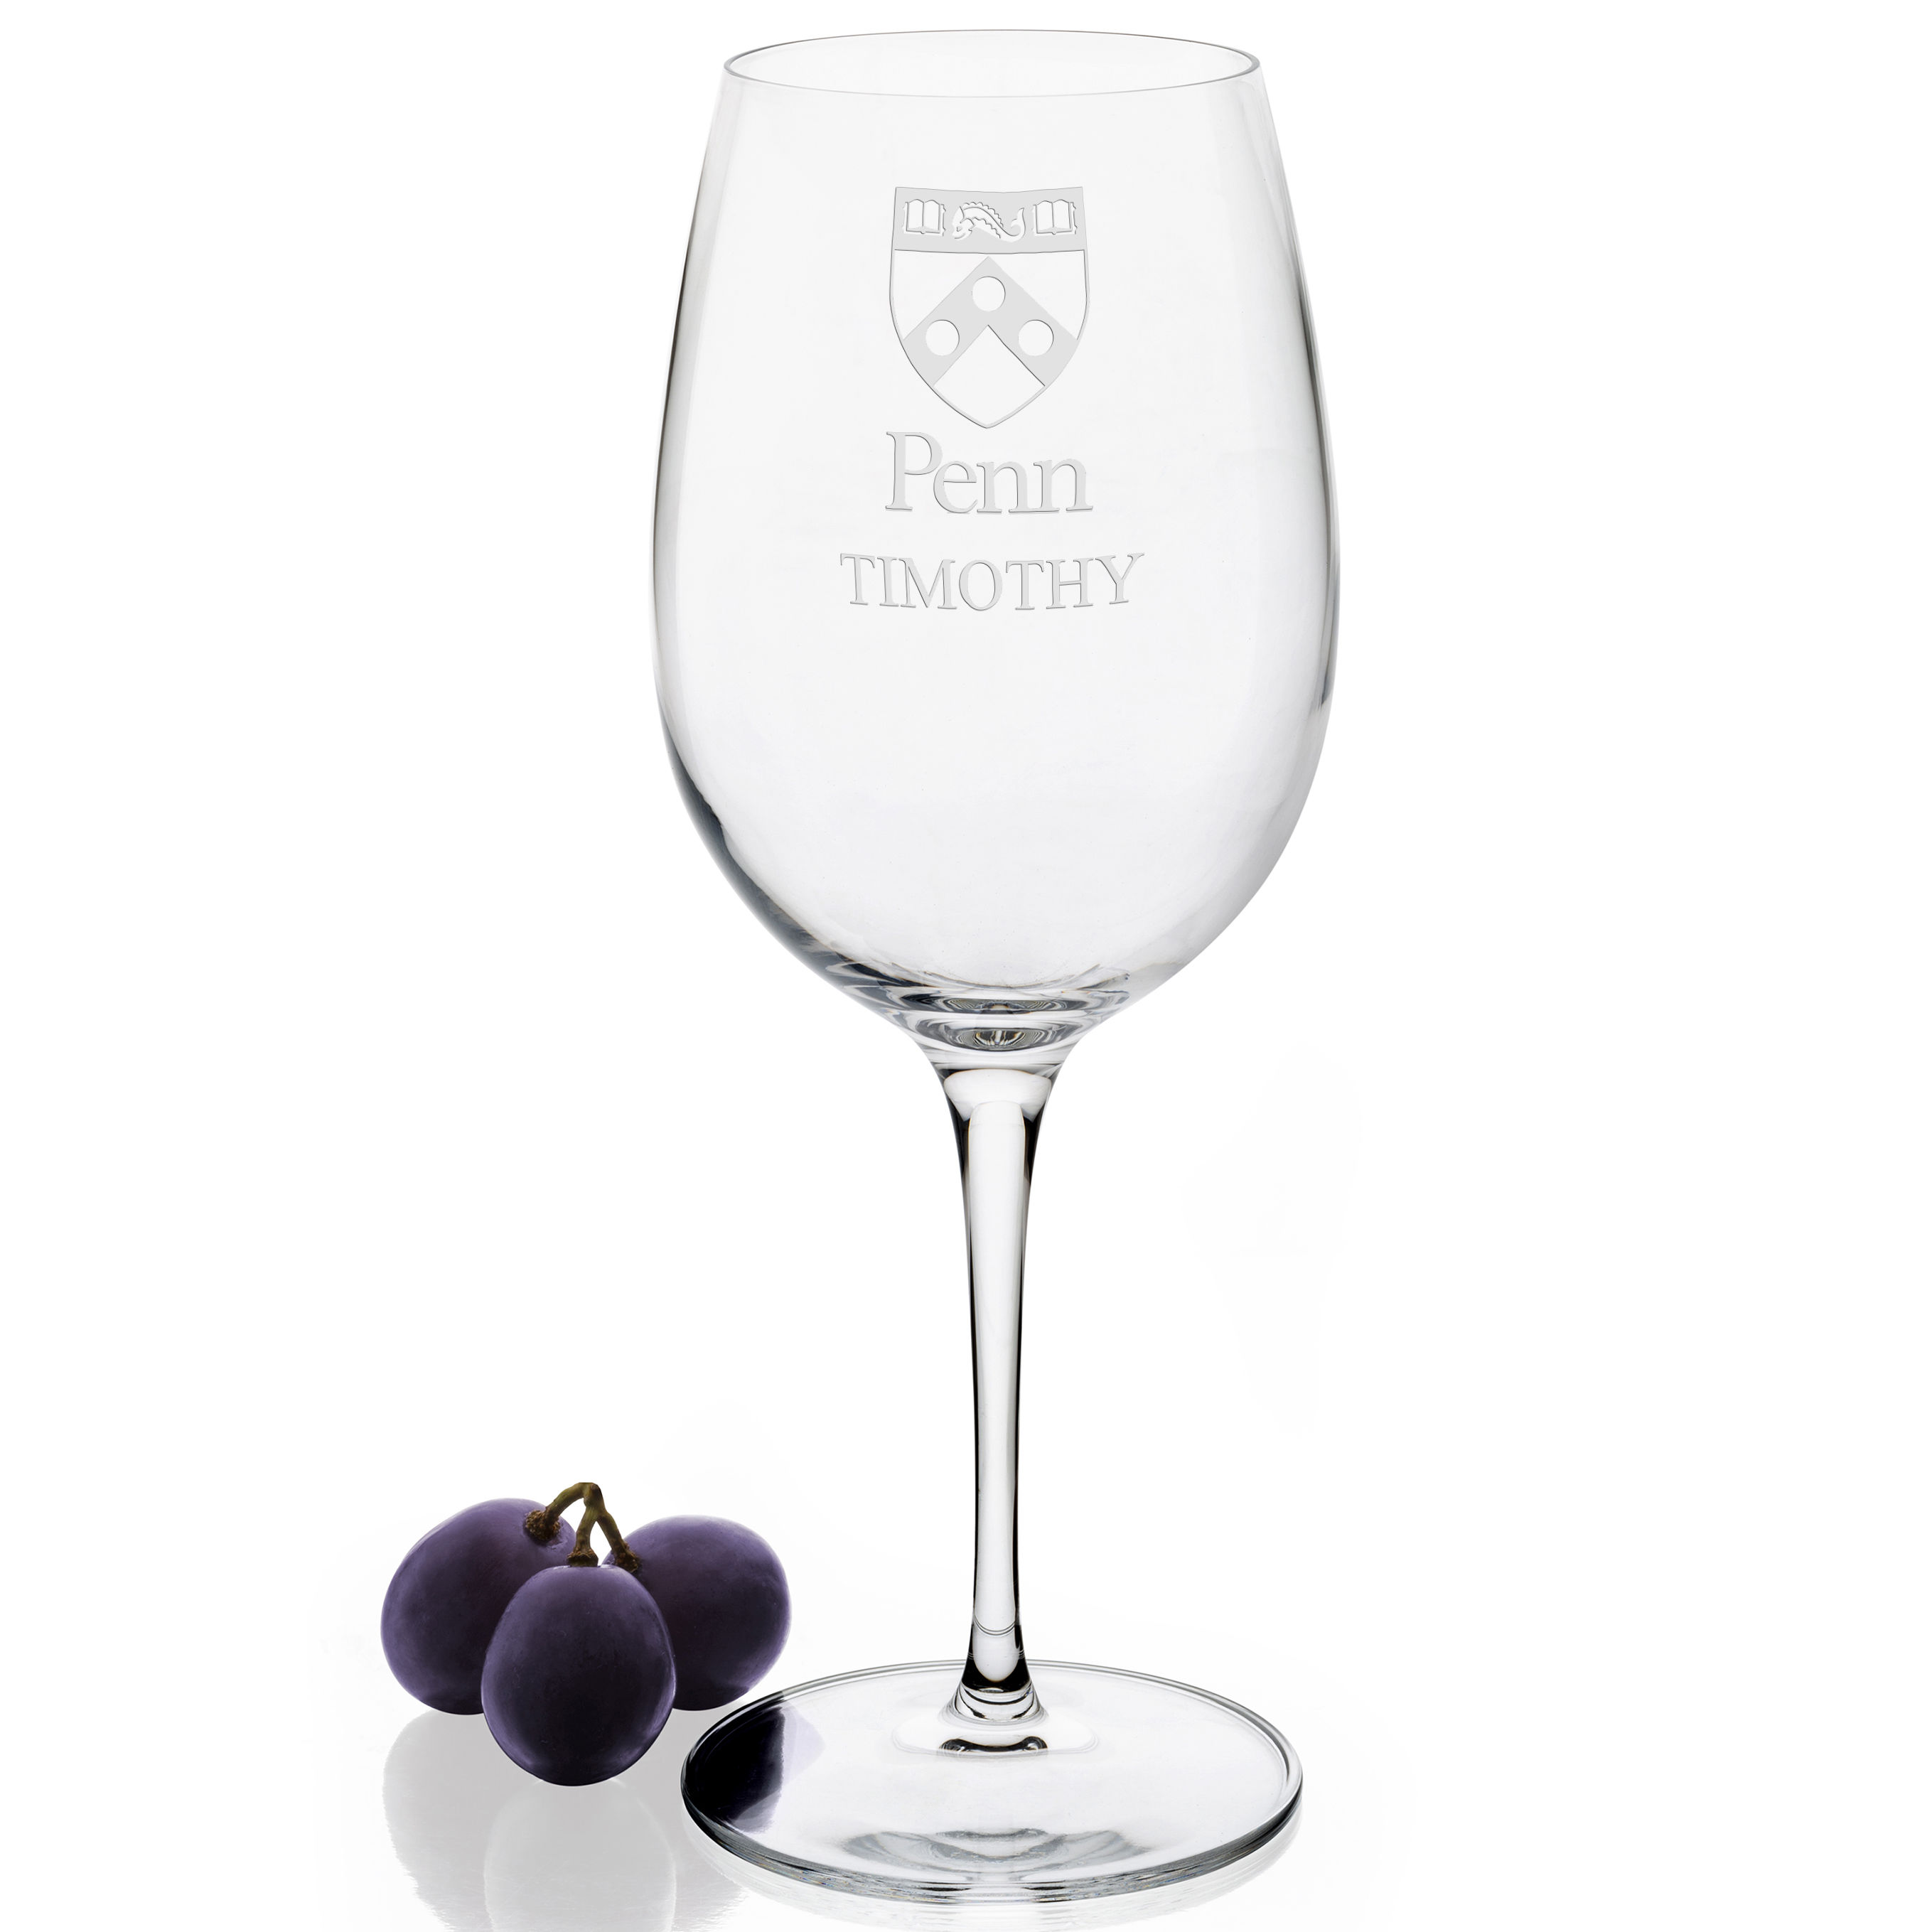 University of Pennsylvania Red Wine Glasses - Set of 4 - Image 2